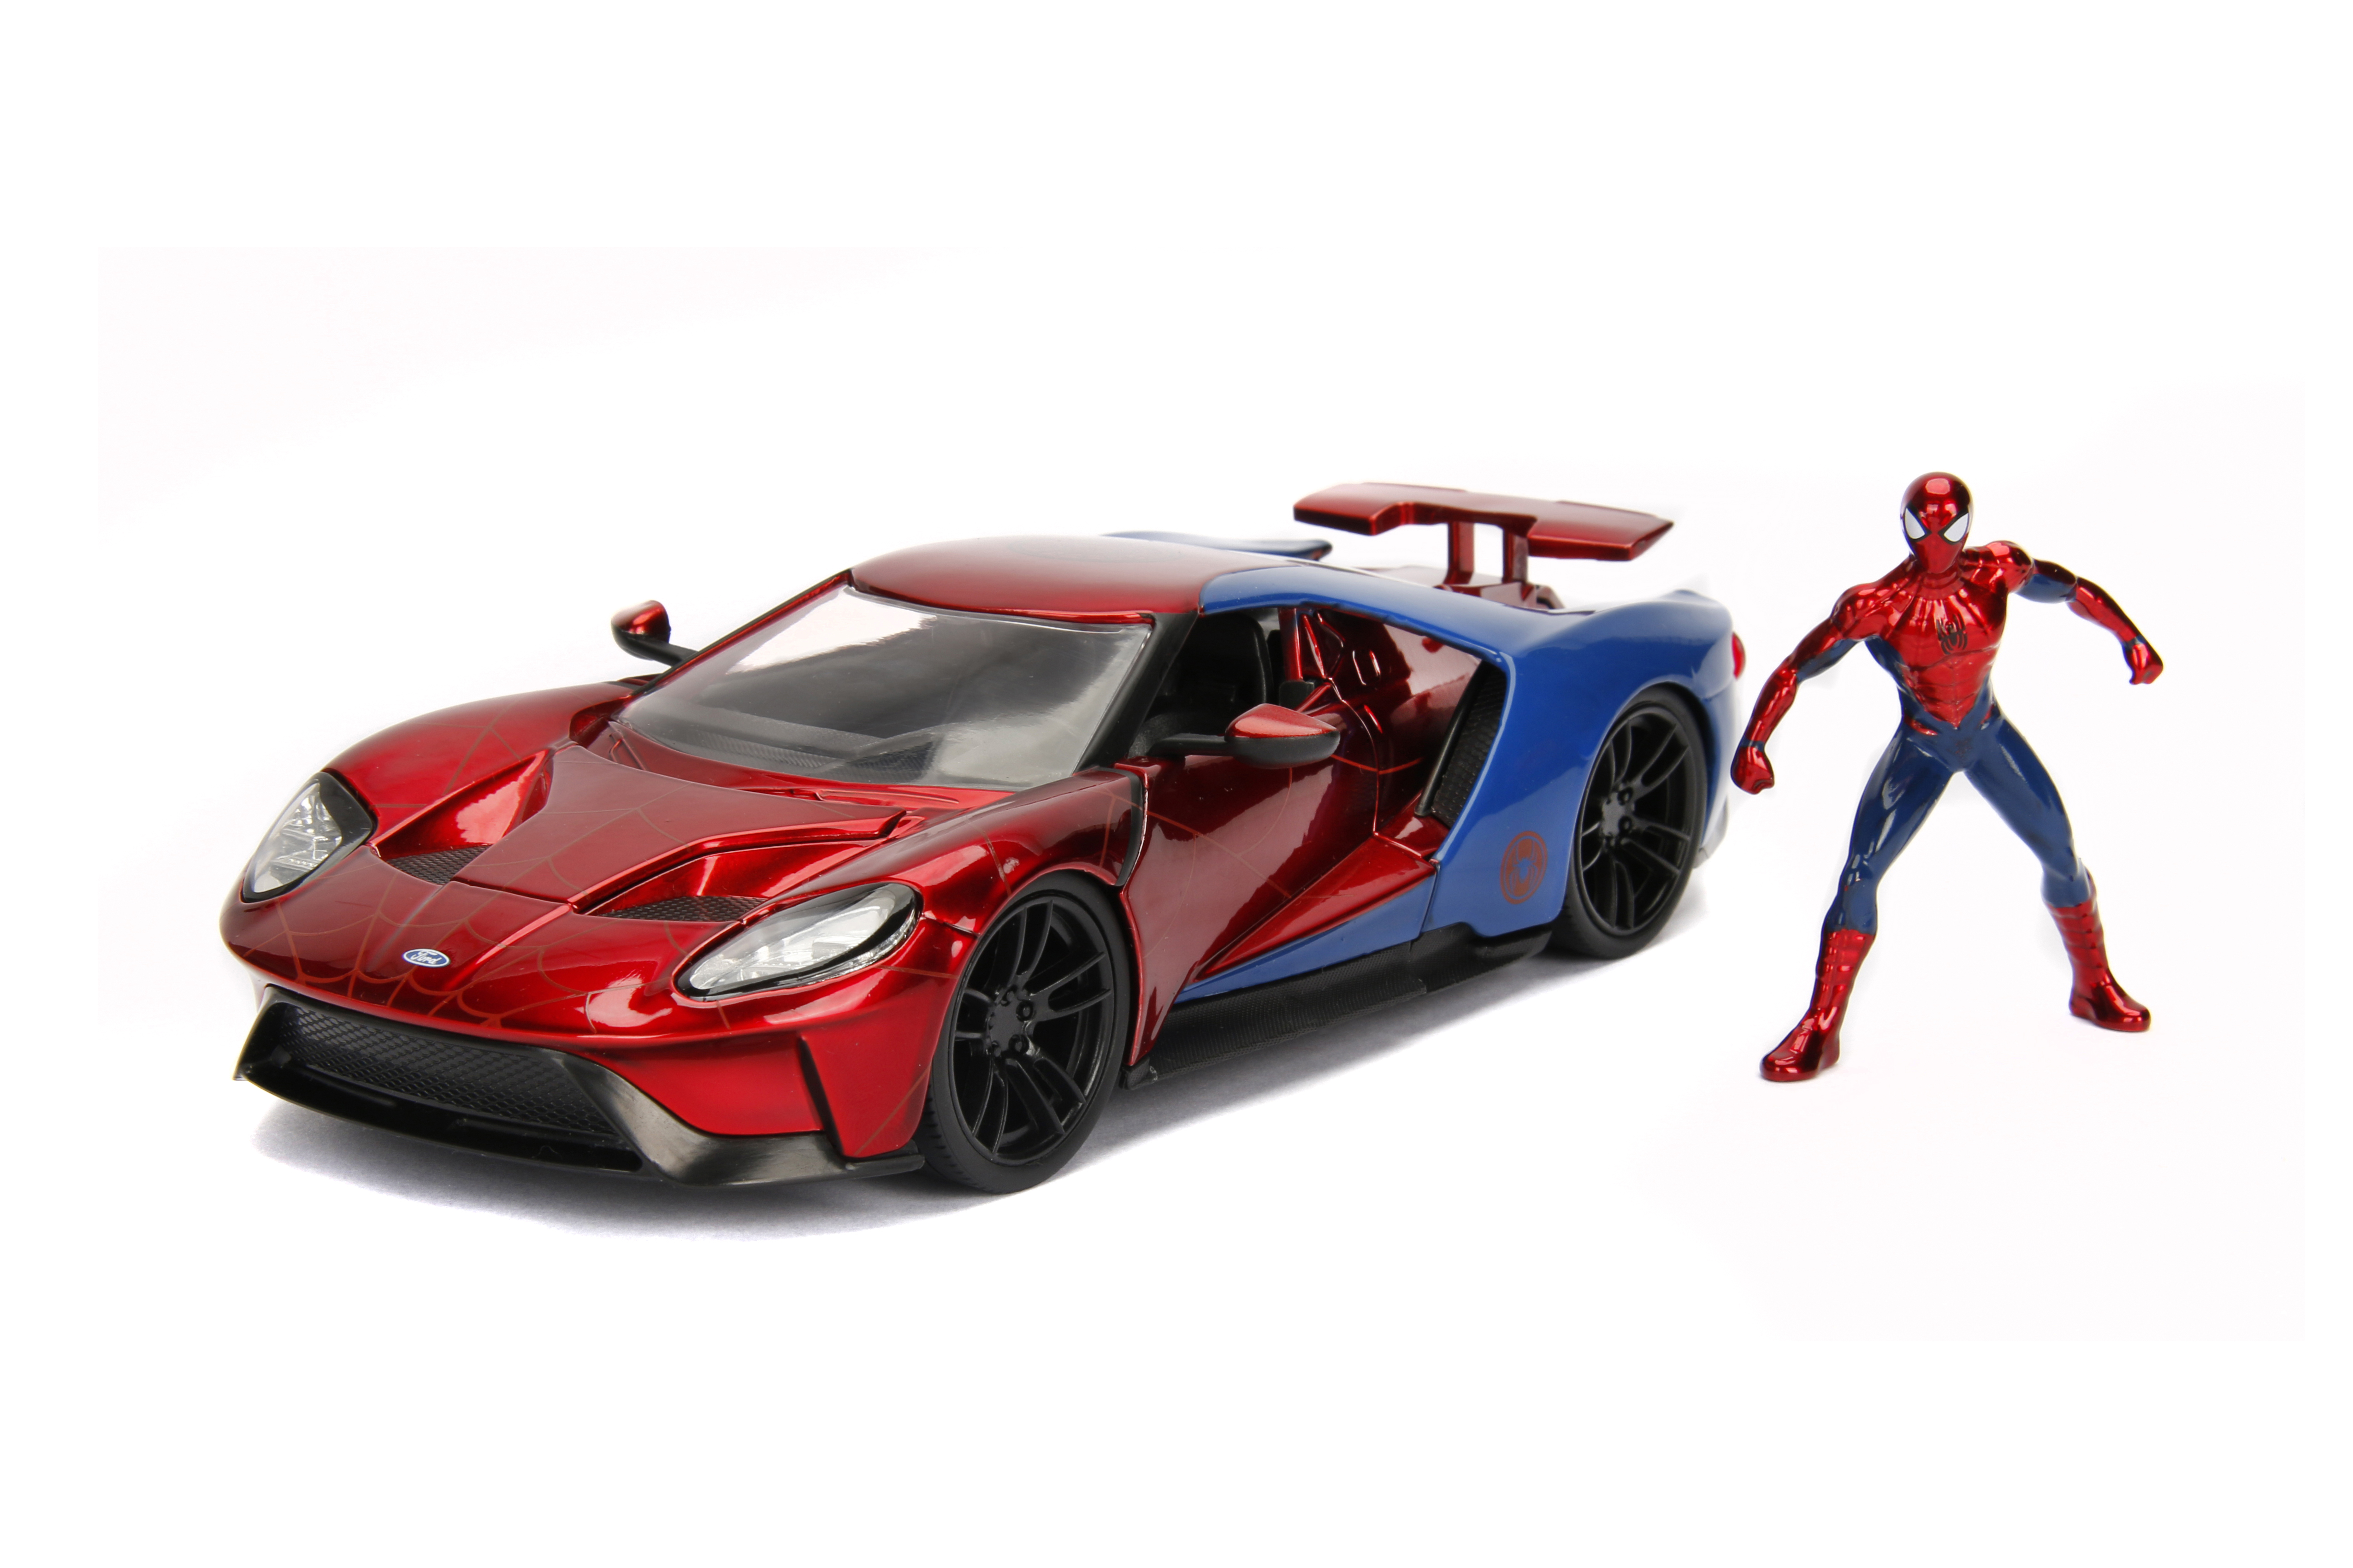 Hollywood Rides 1:24 Scale Marvel Spiderman Die Cast Vehicle with Figure by Jada Toys by Jada Toys